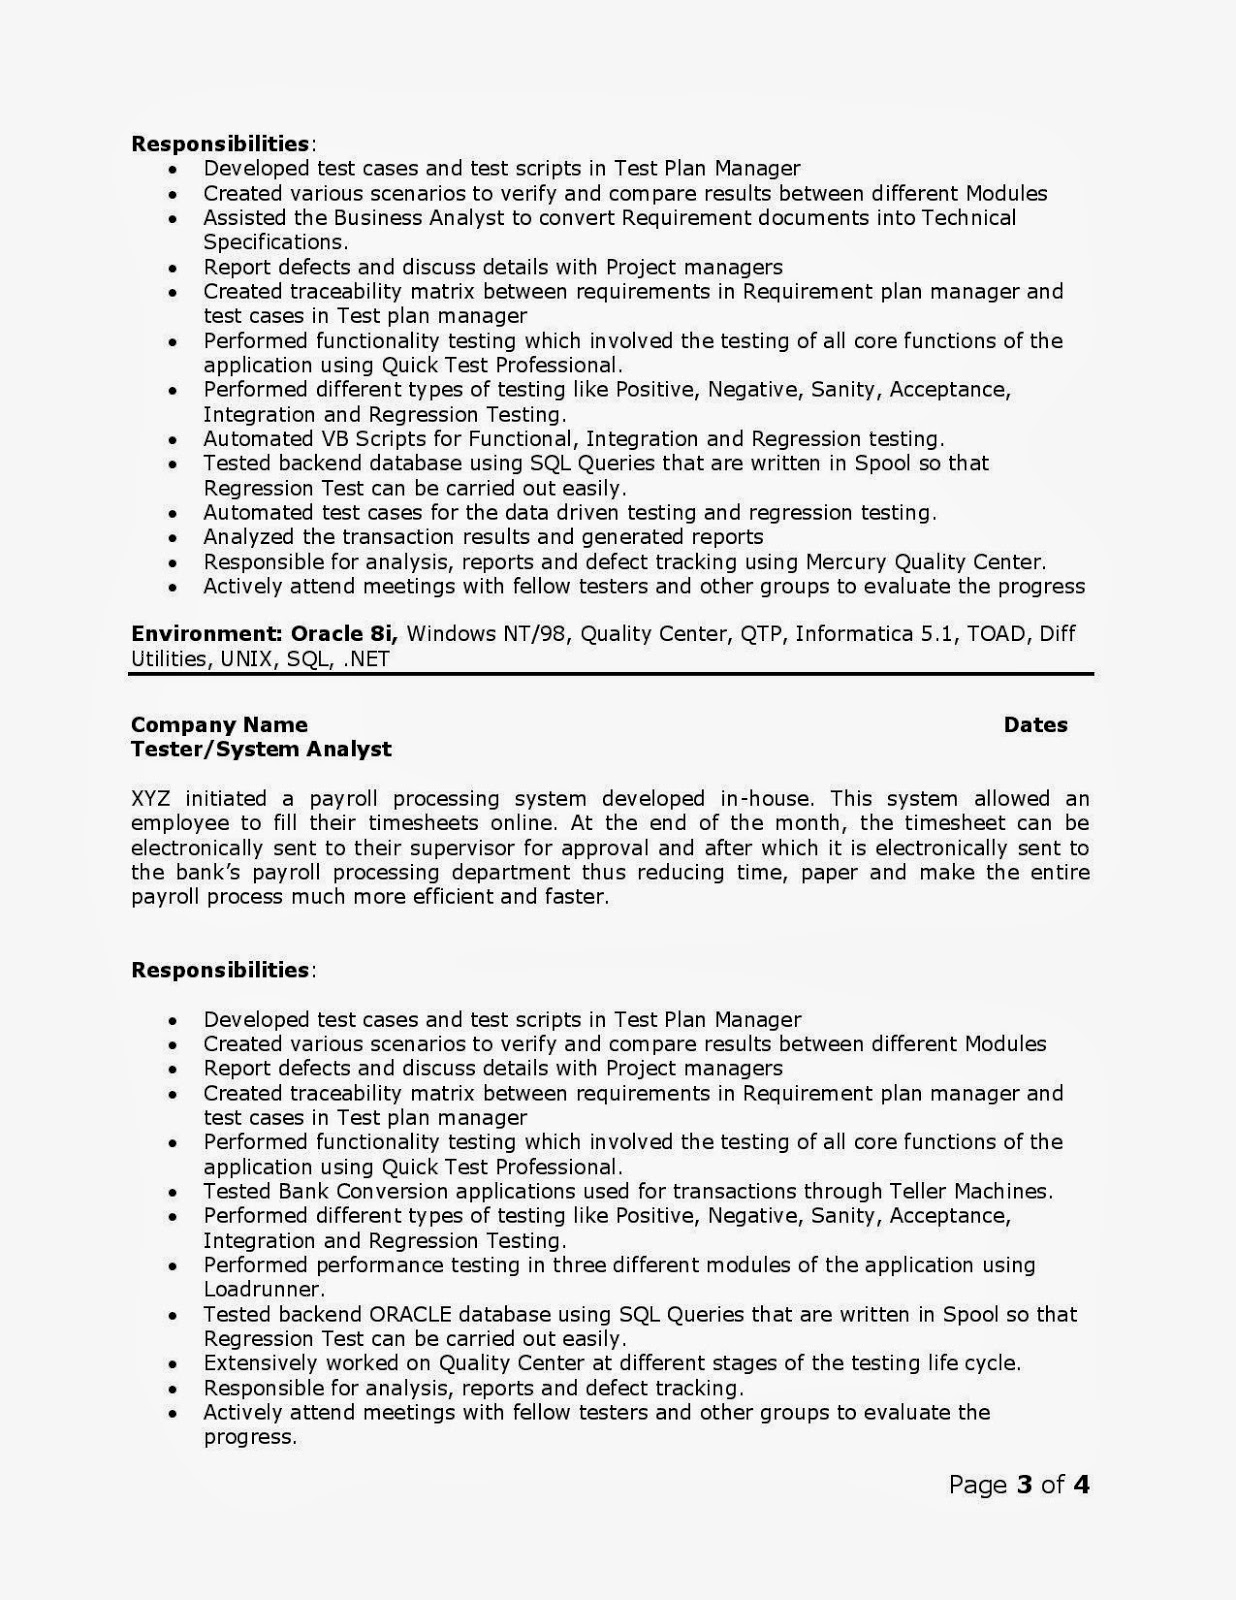 Resume for quality assurance analyst vatozozdevelopment recent posts spiritdancerdesigns